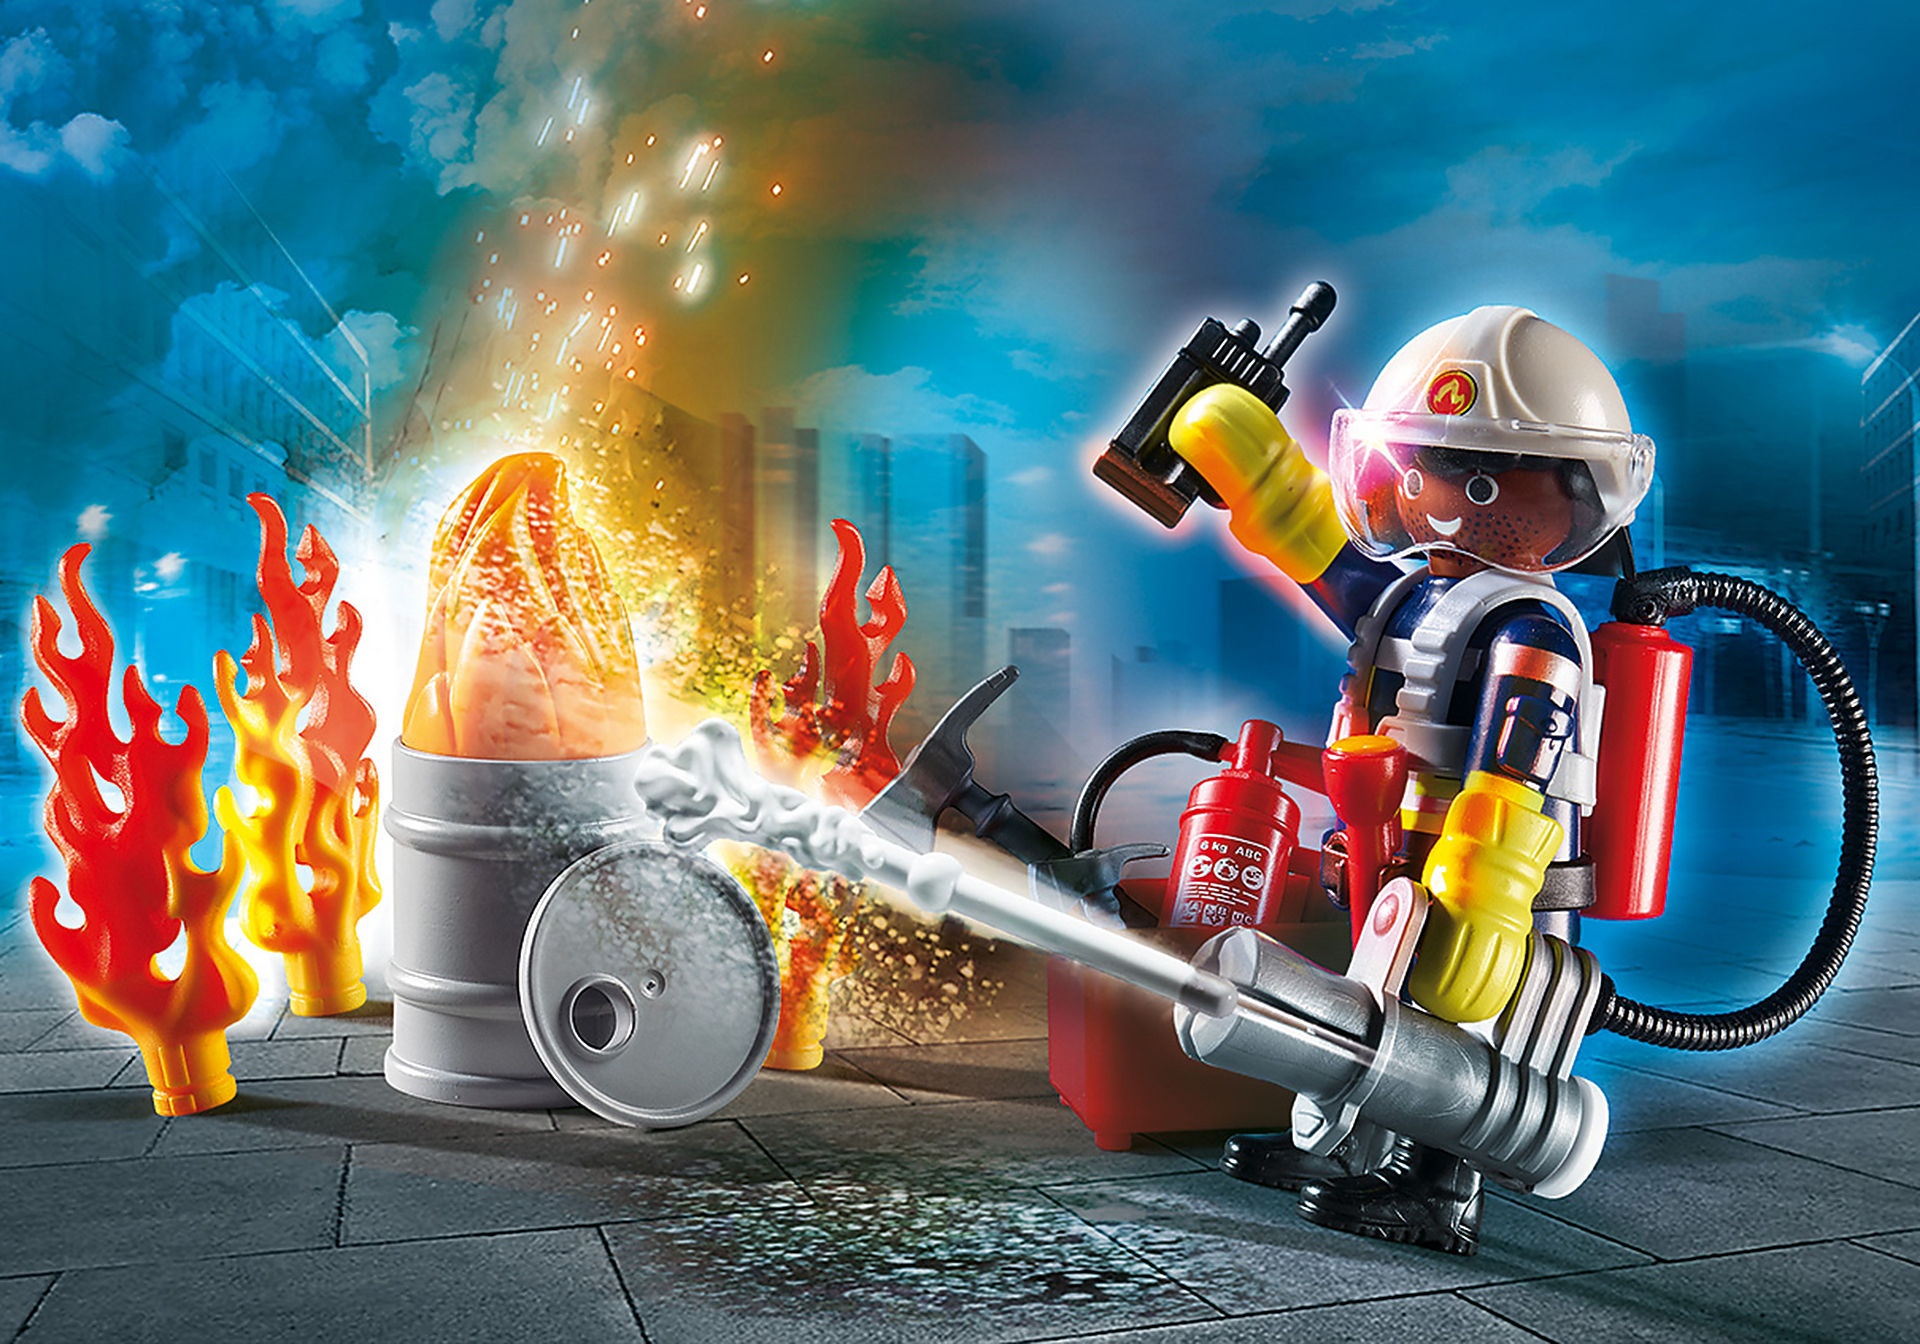 70291 Fire Rescue Gift Set zoom image1